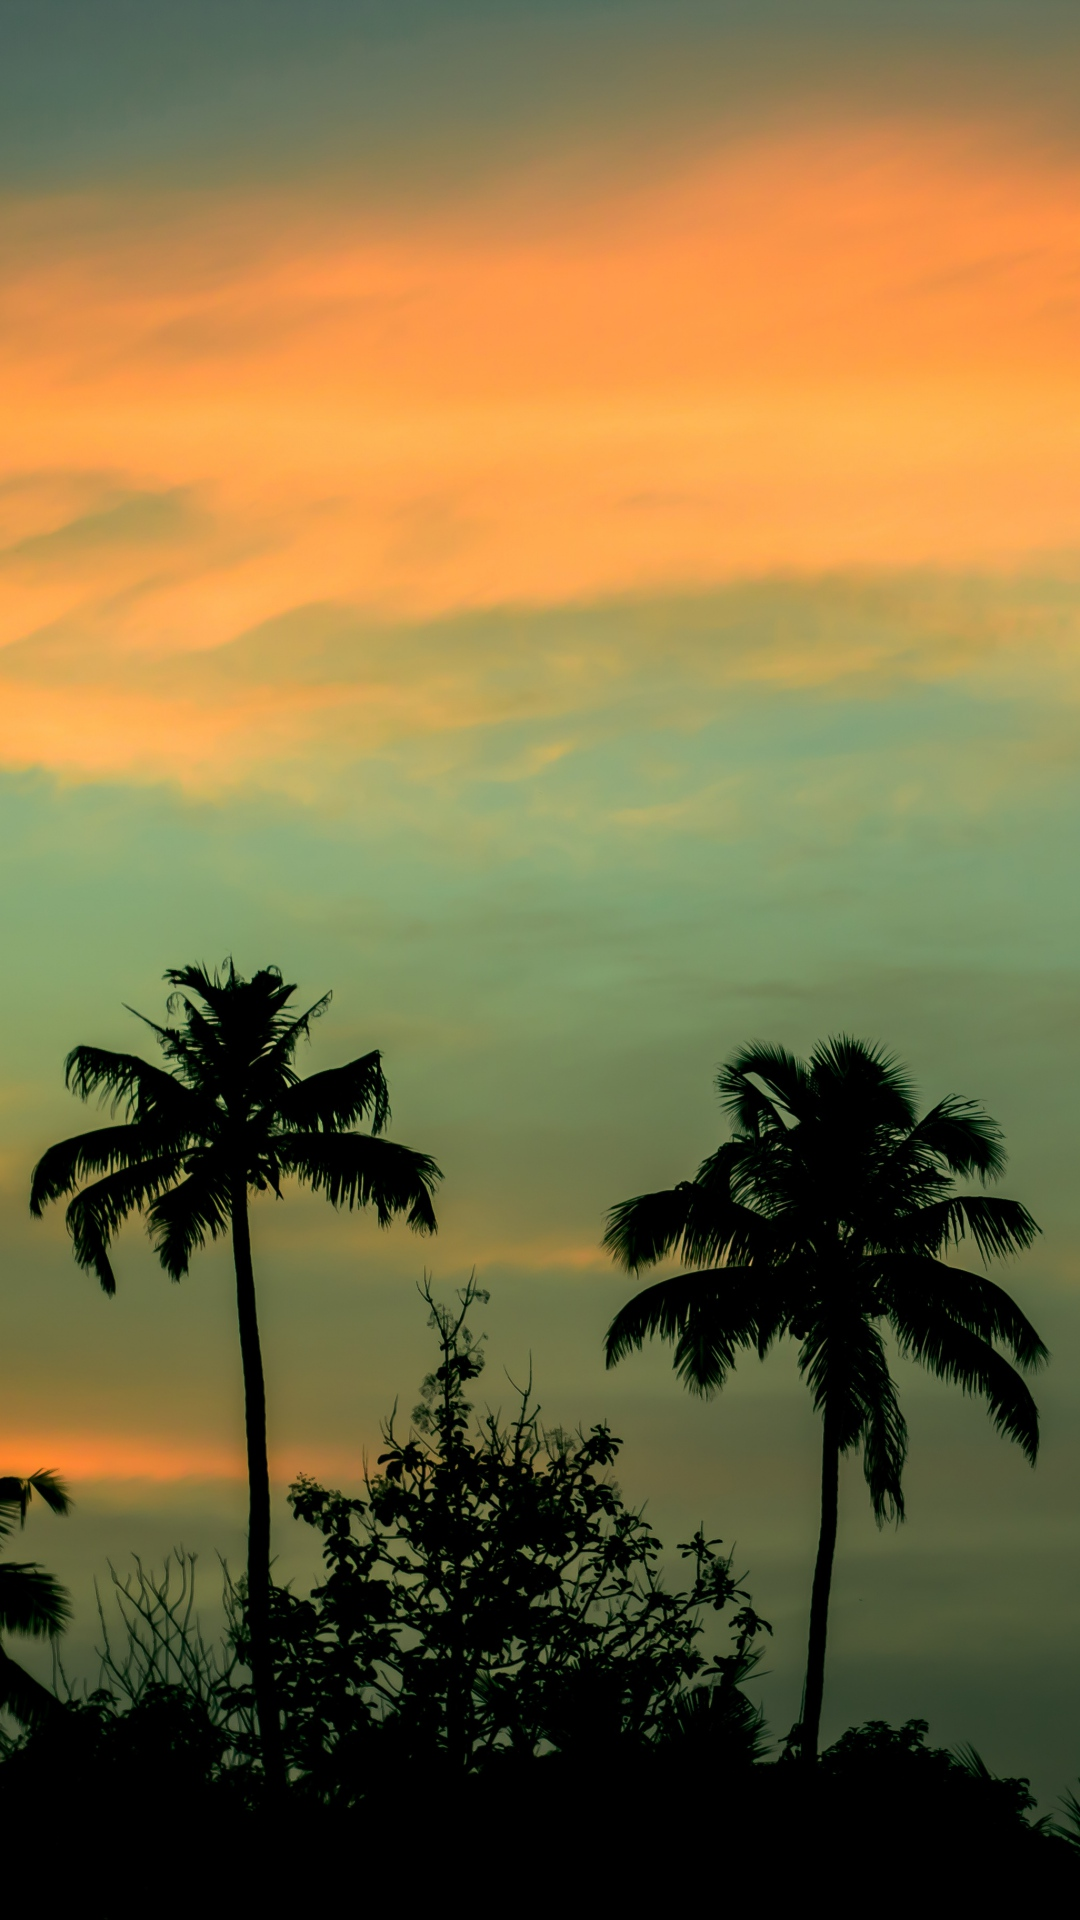 iphone wallpaper palms sunset Palm tree